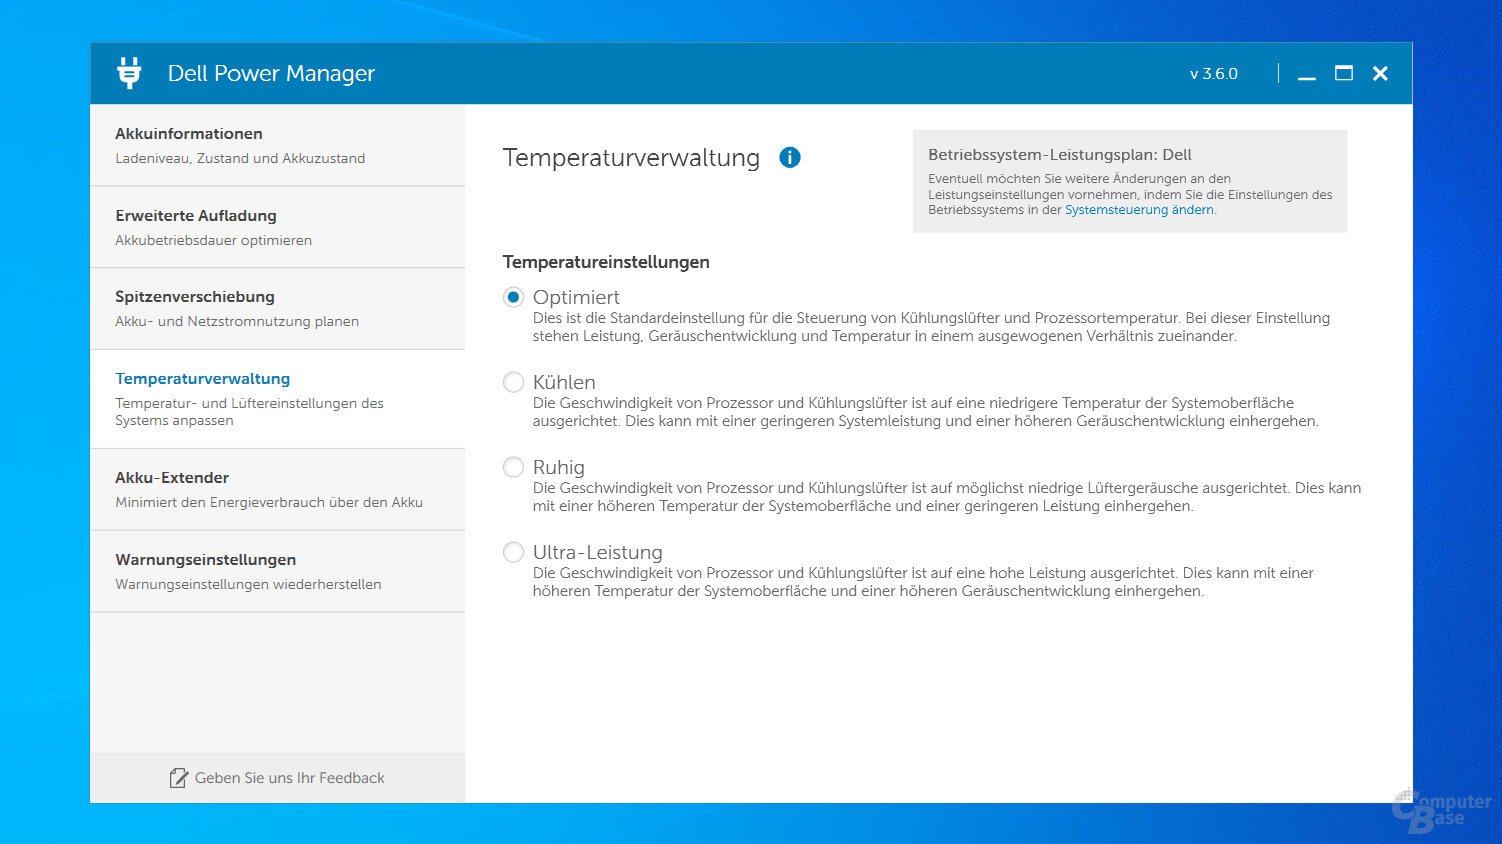 Energieprofile im Dell Power Manager